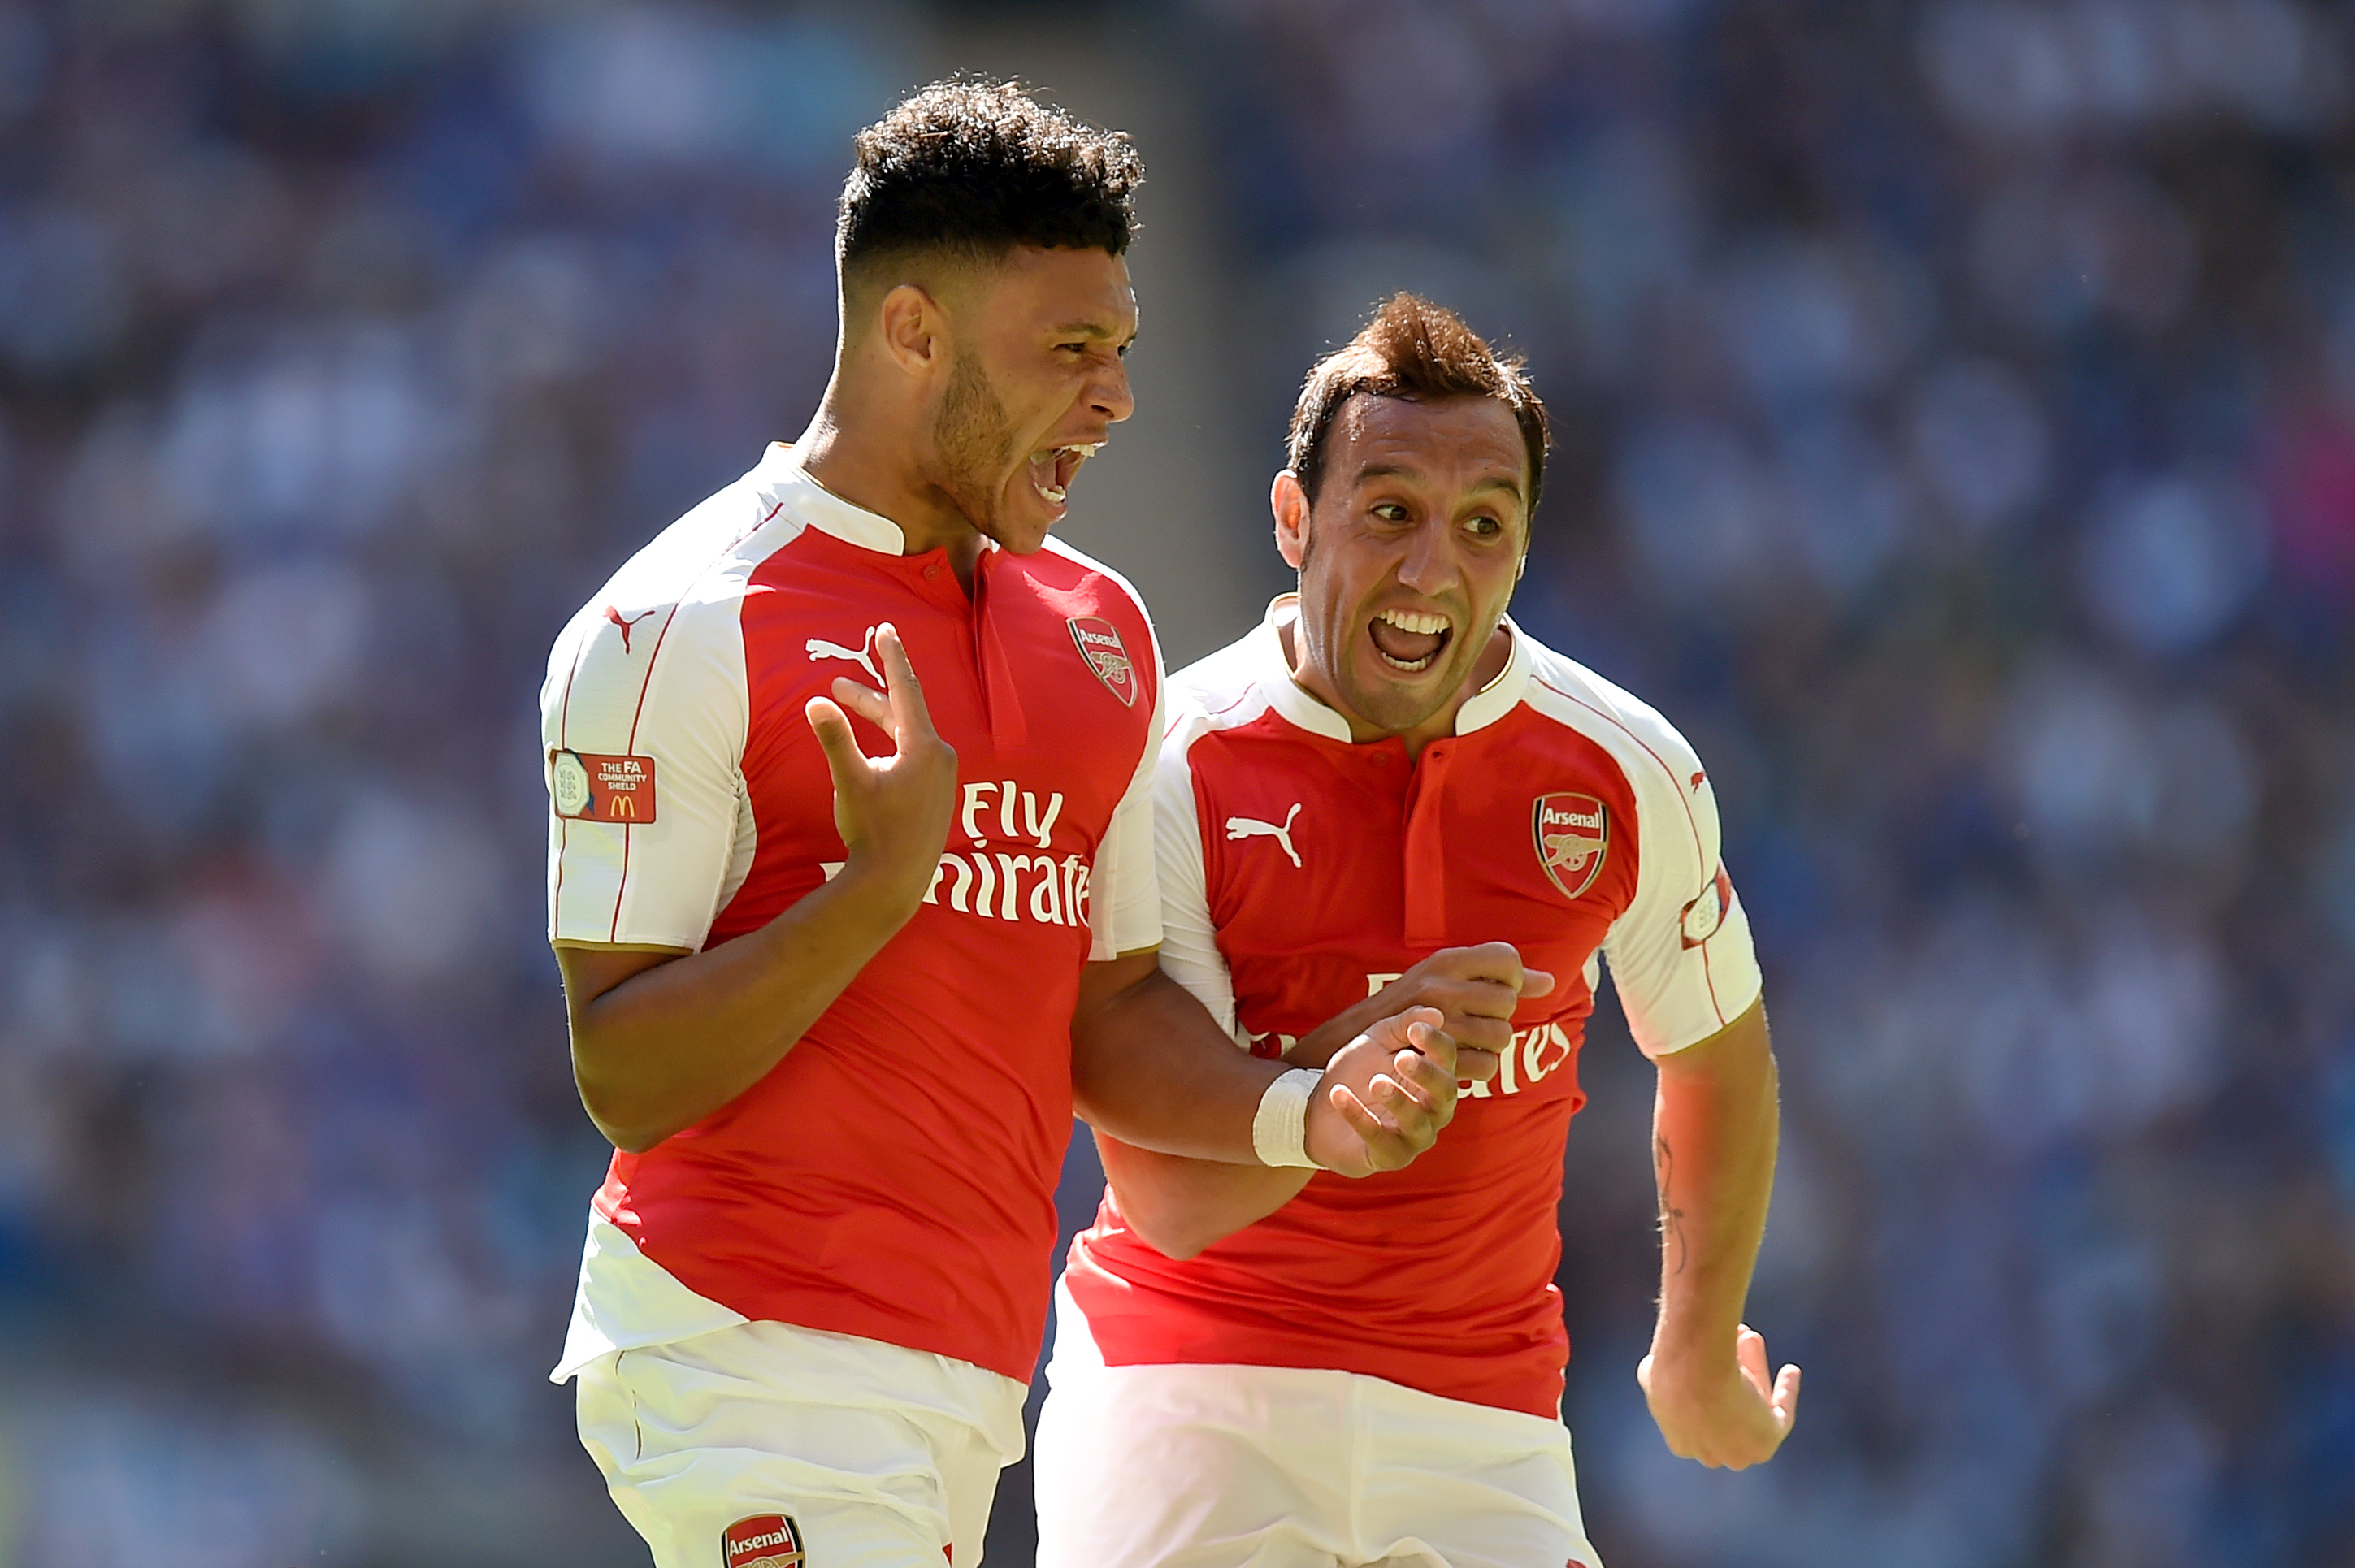 Alex Oxlade-Chamberlain scored the only goal as Arsenal beat Chelsea in the 2015 Community Shield.